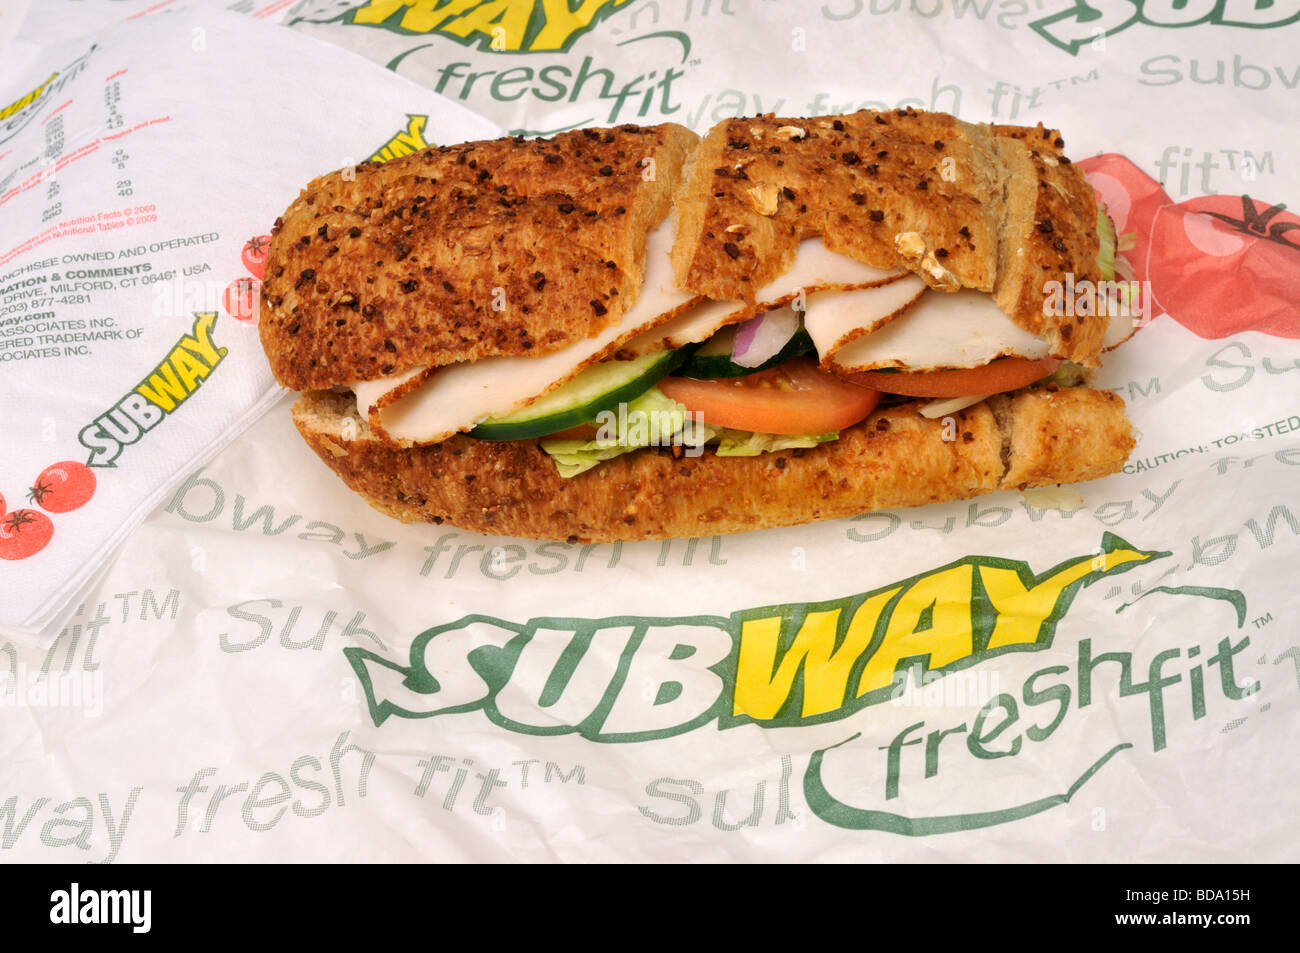 Sub Specials at Subway